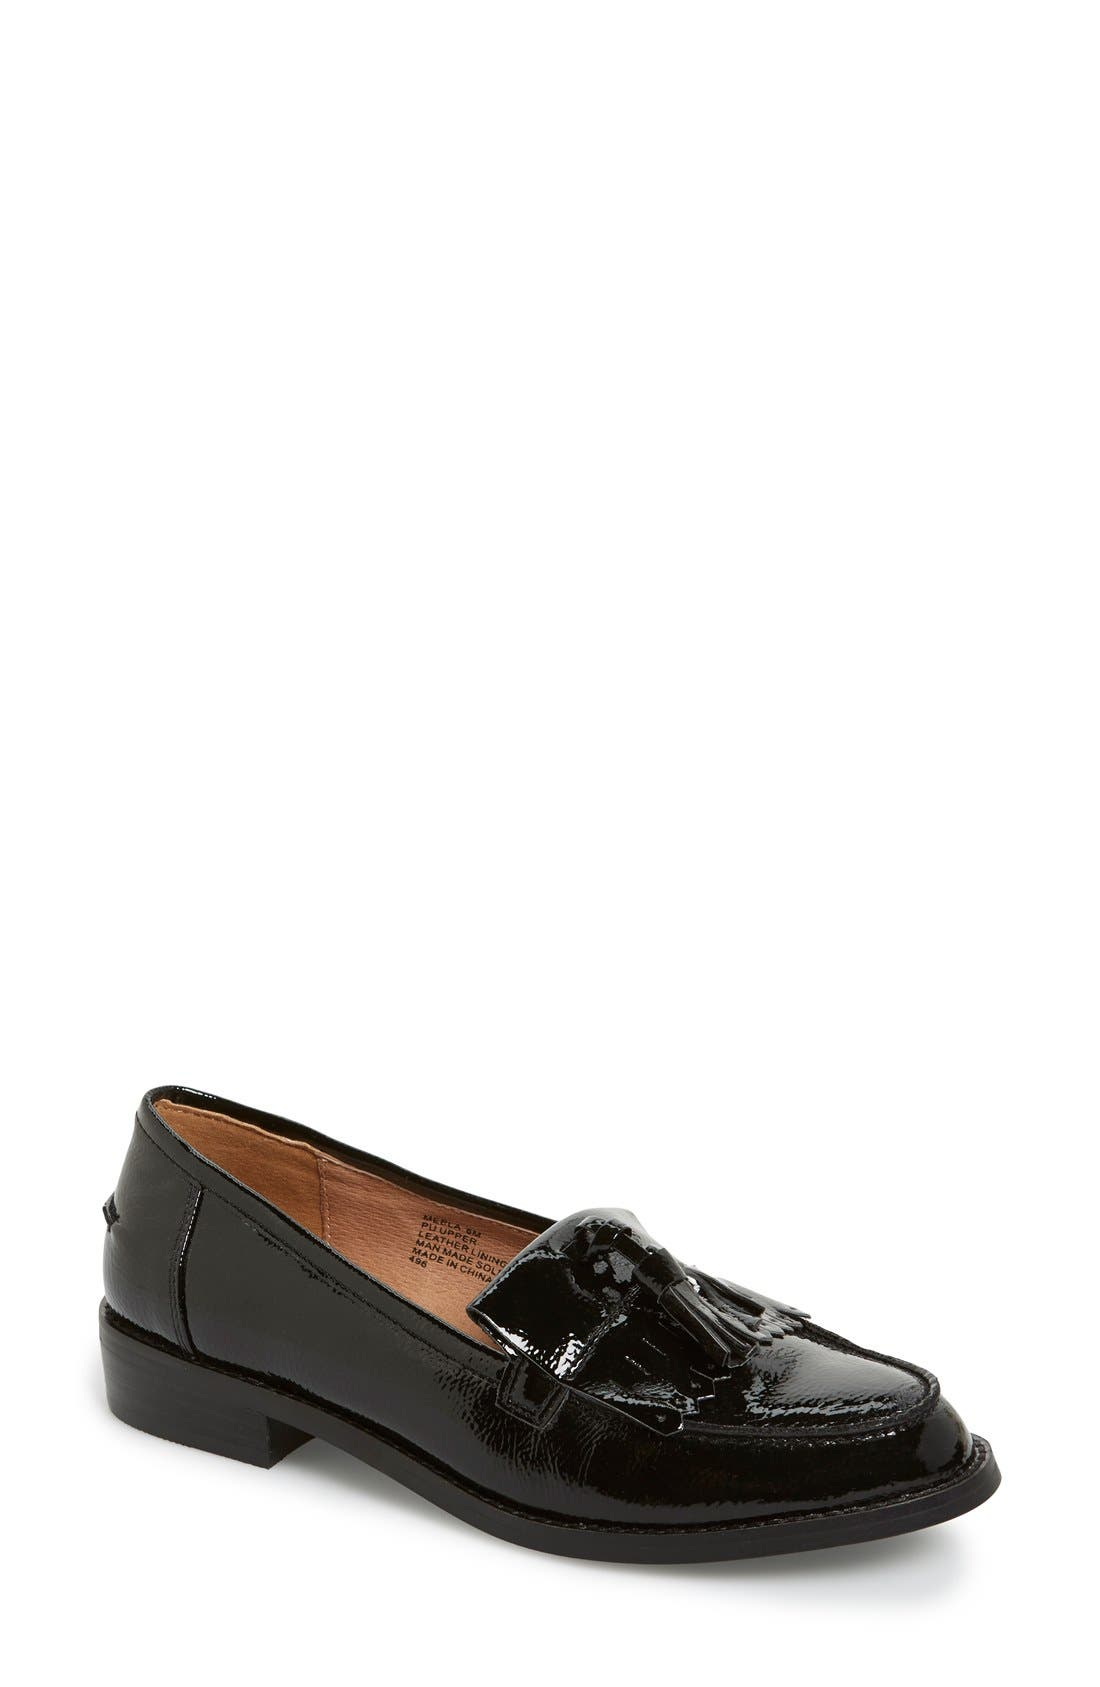 'Meela' Loafer,                         Main,                         color, 002